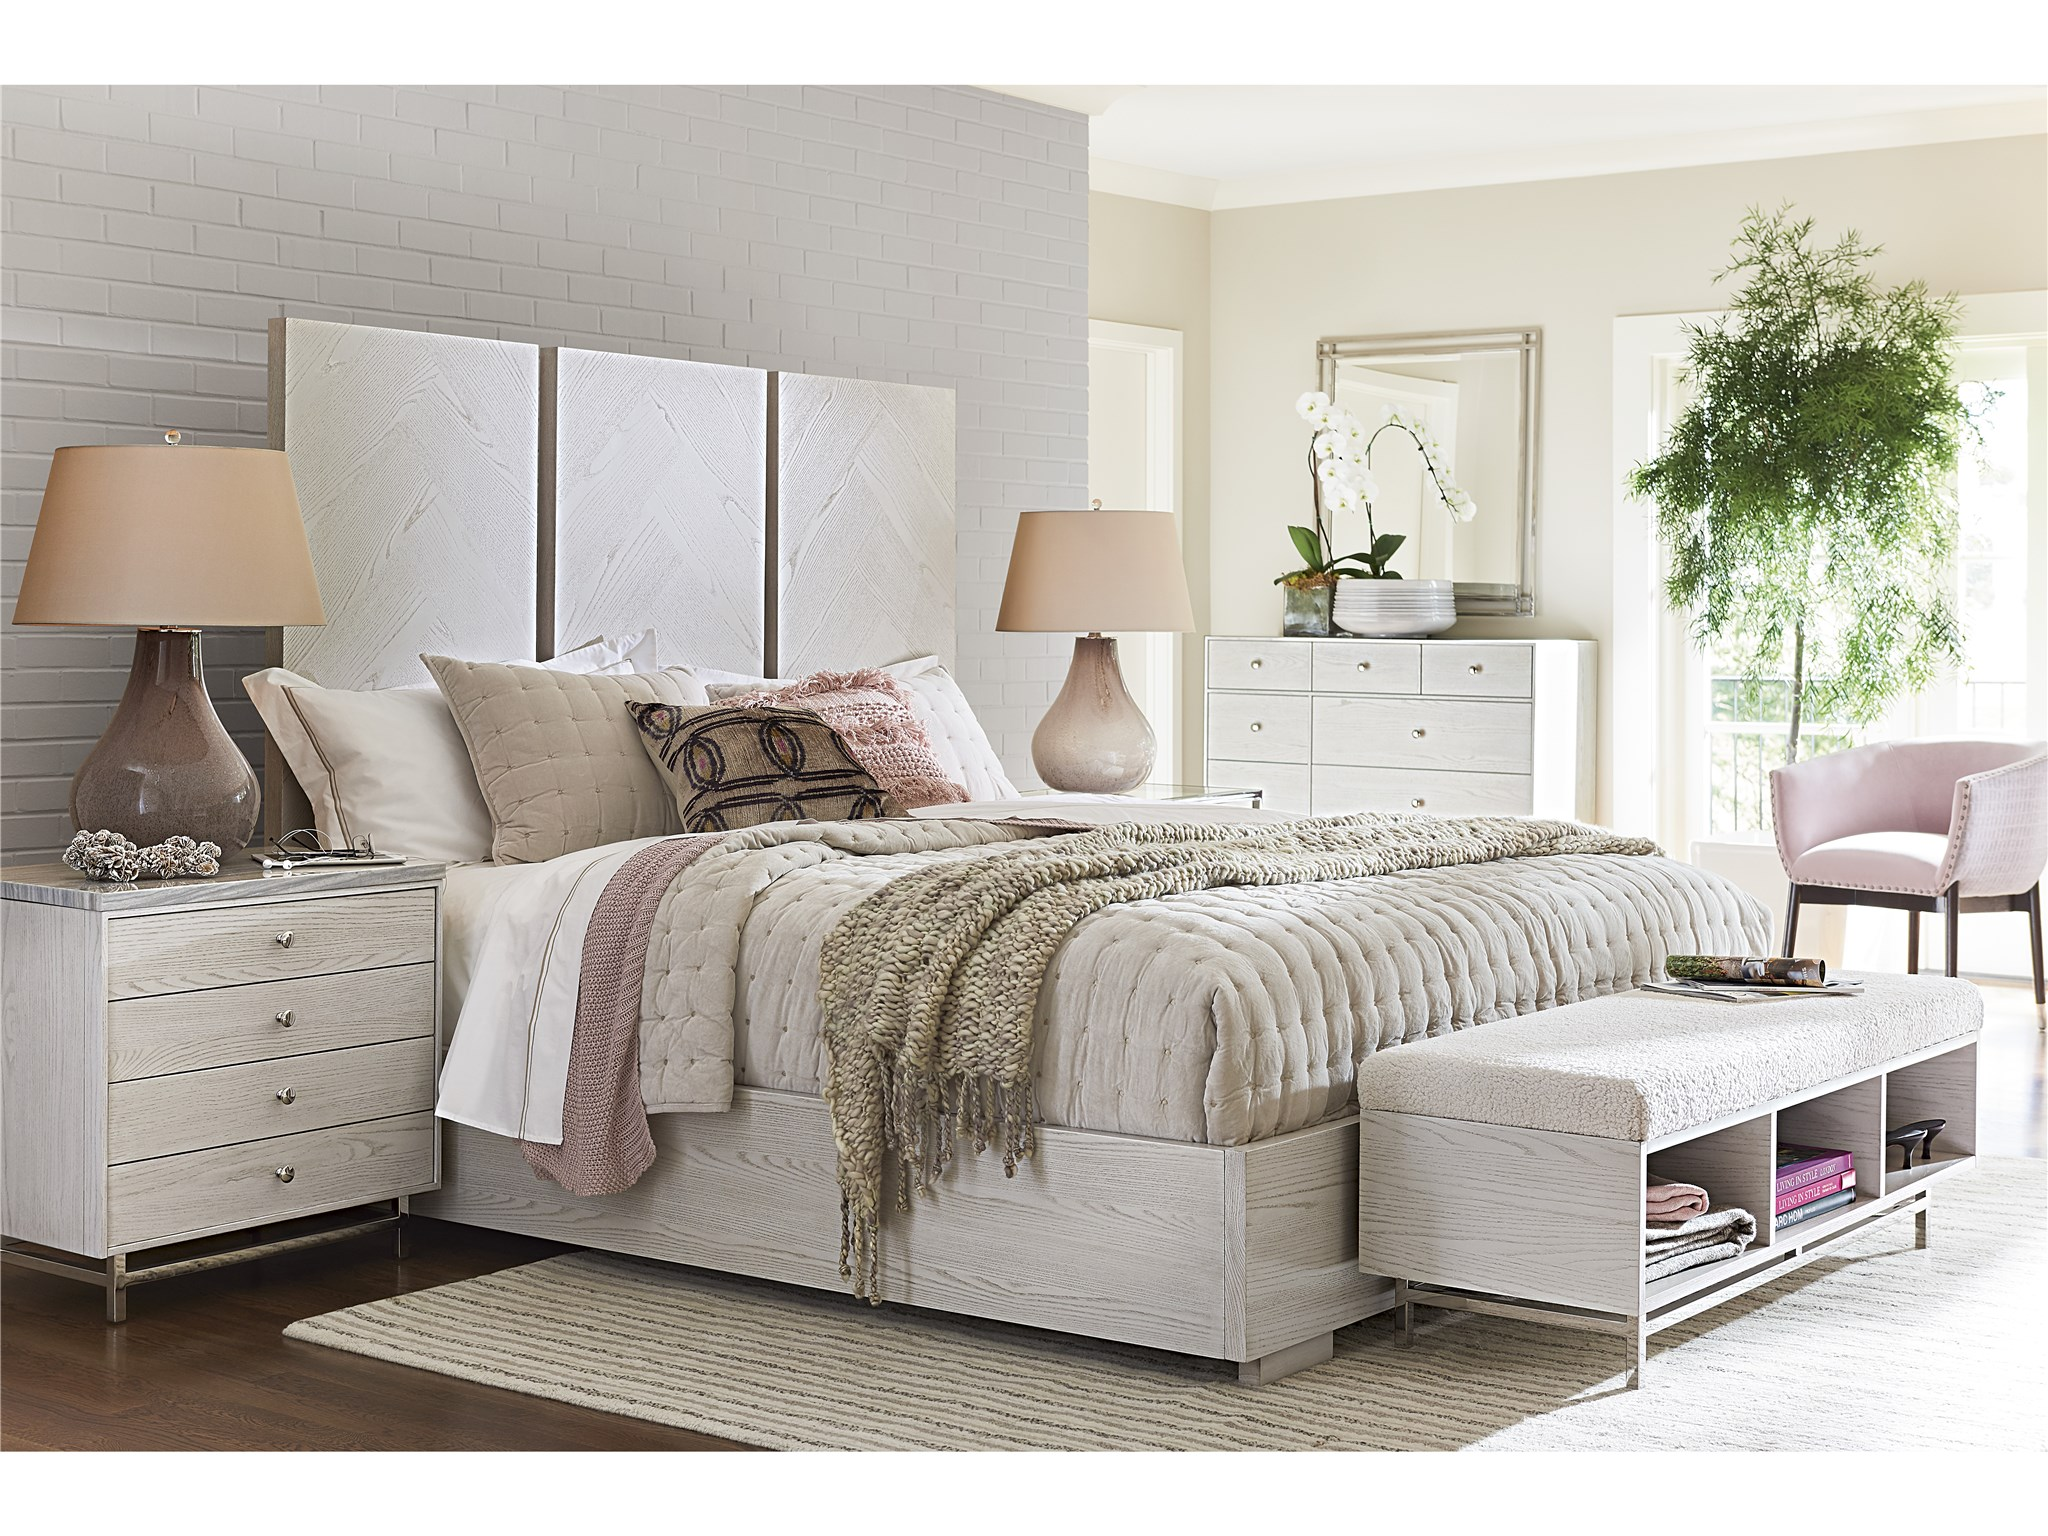 Axiom King Bed